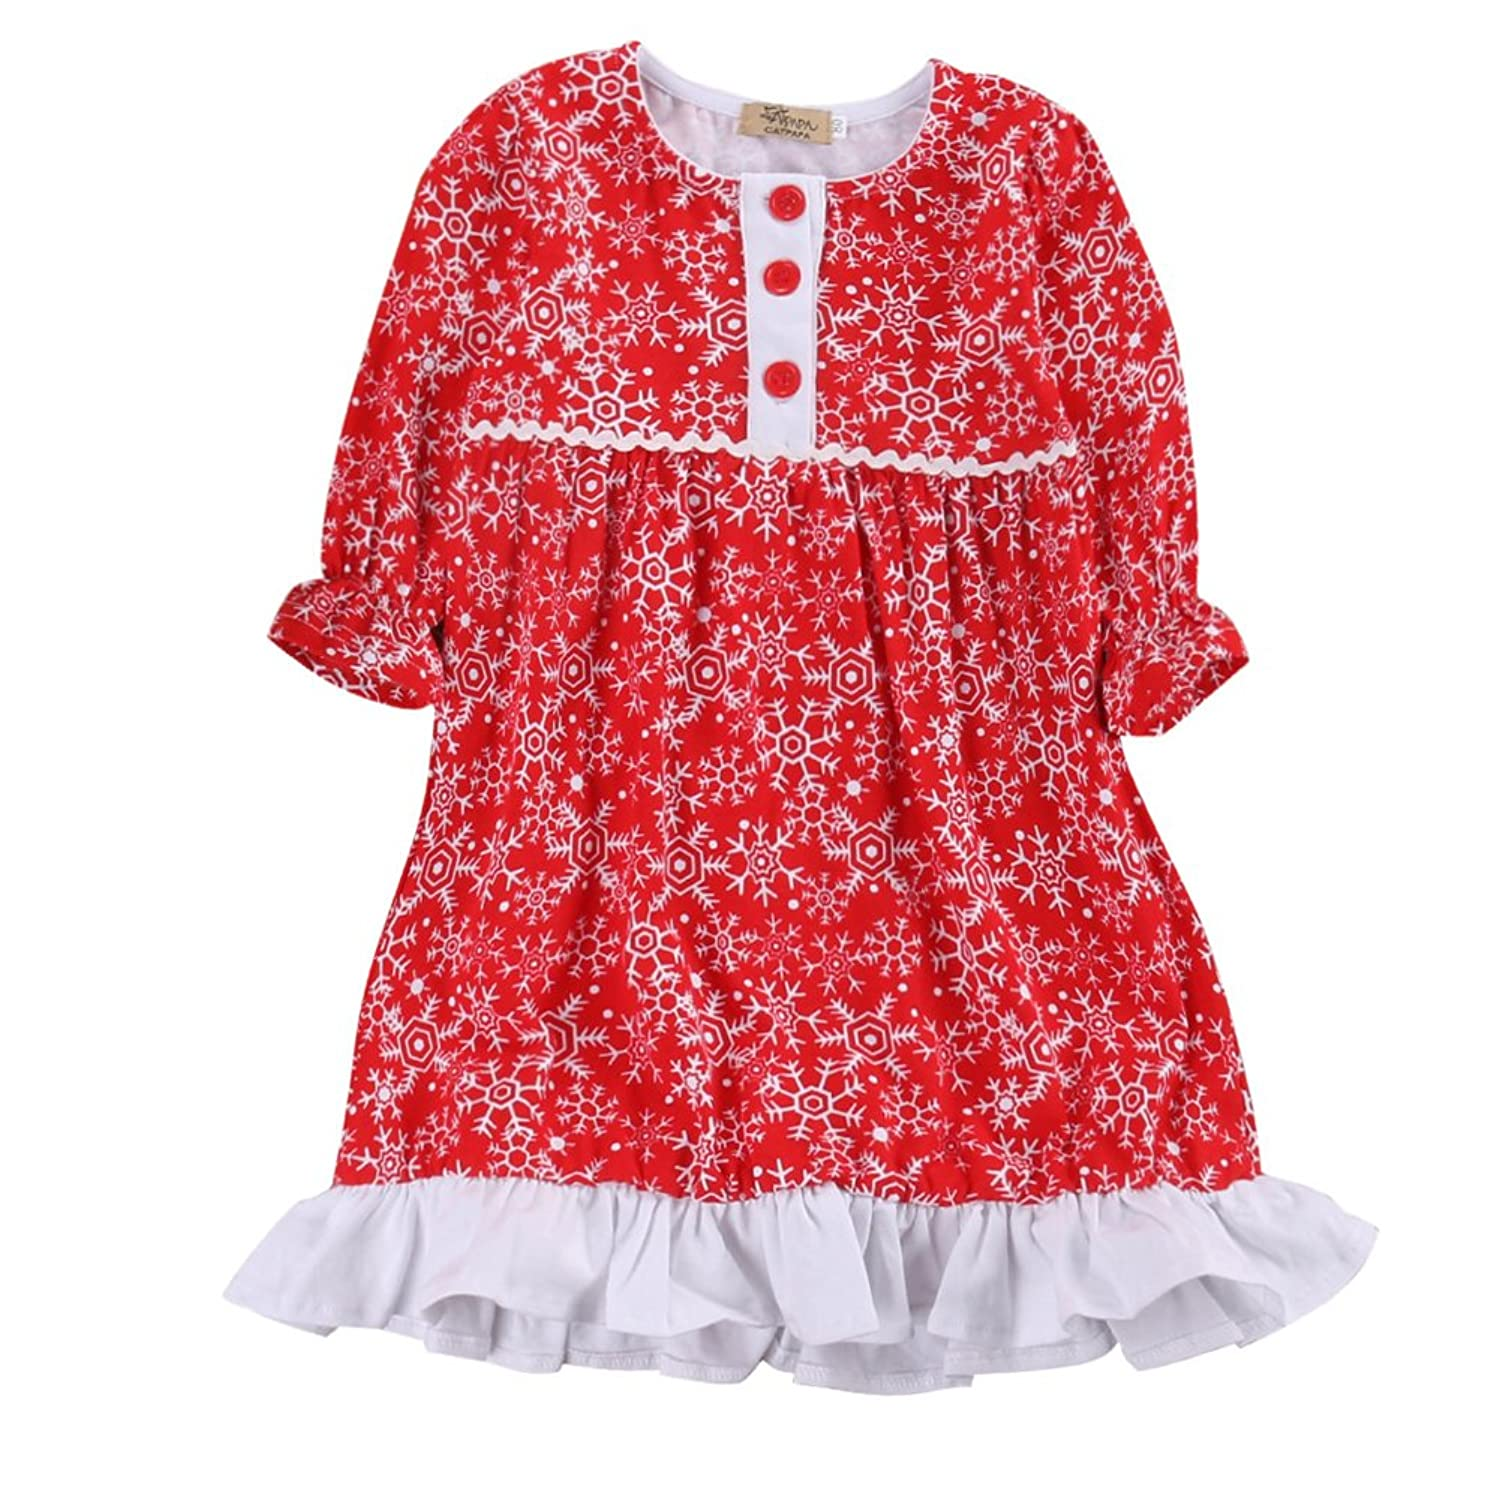 Toddler Girls Christmas Outfits Baby Kids Red Snowflake Xmas Party ...